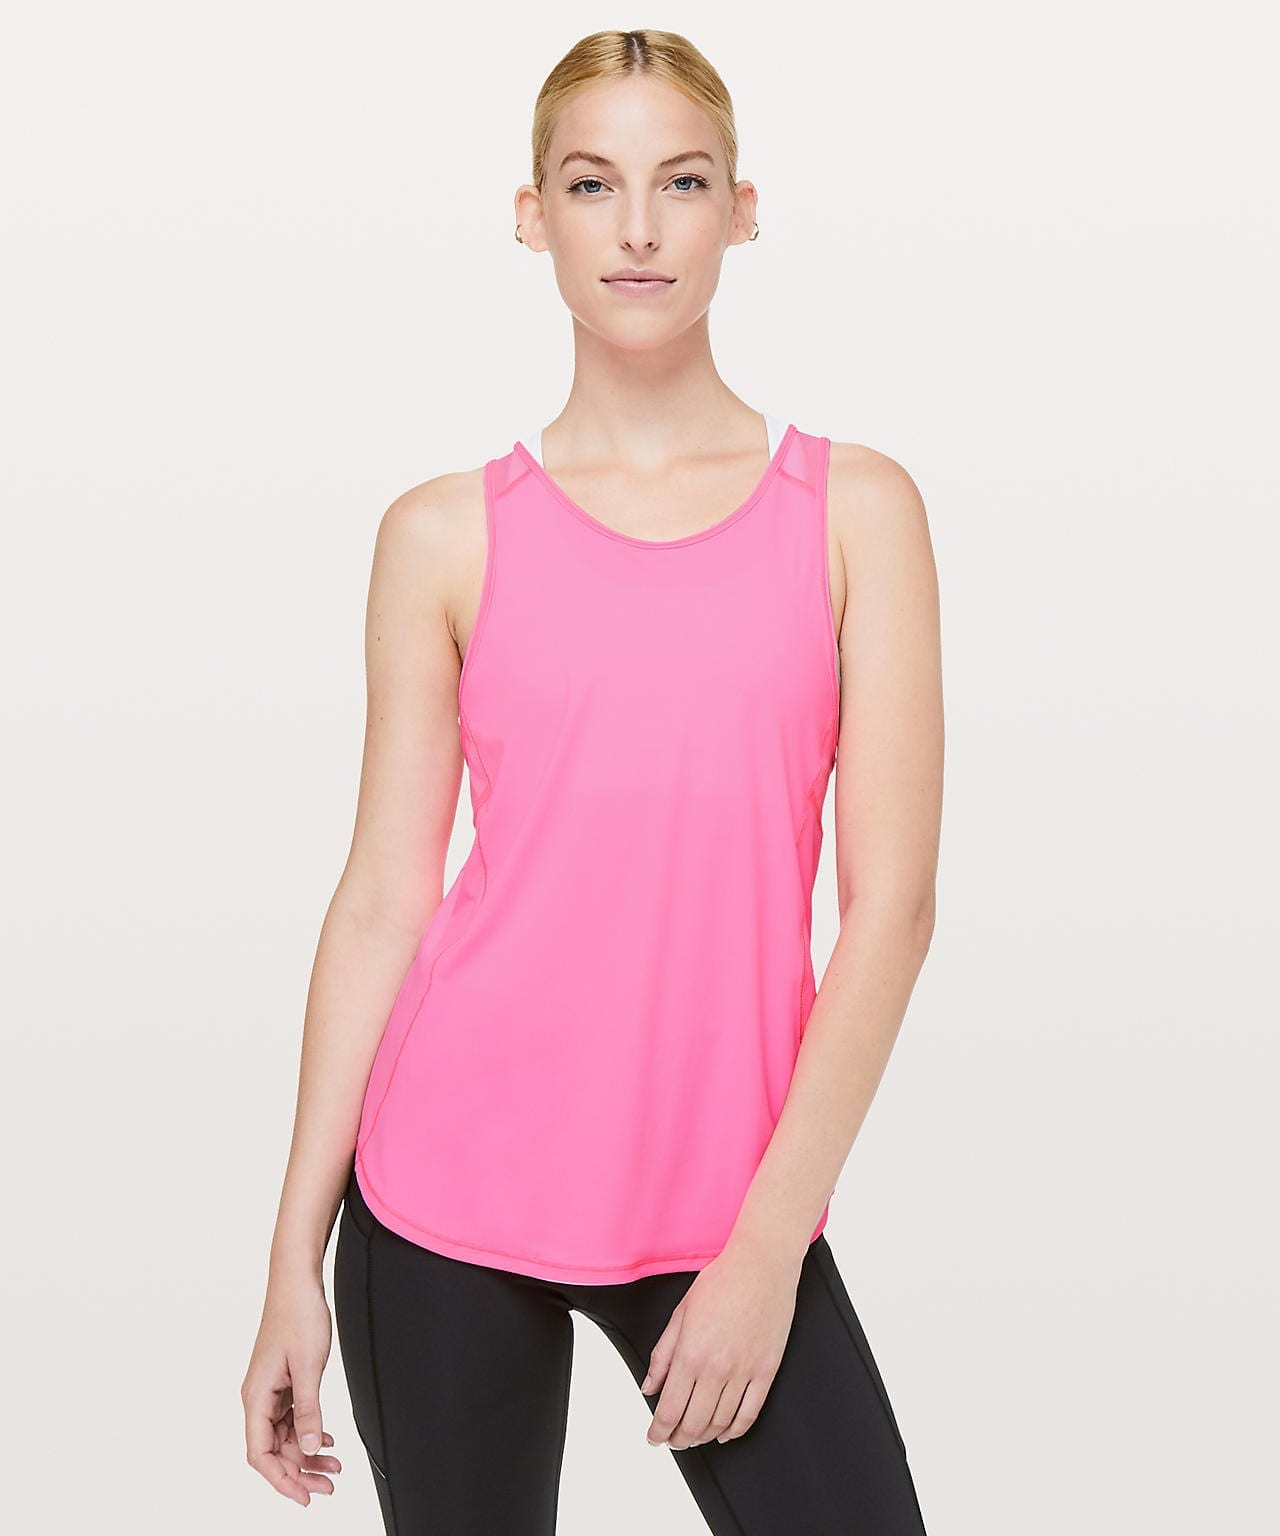 Sculpt Tank II, Zing Pink Light